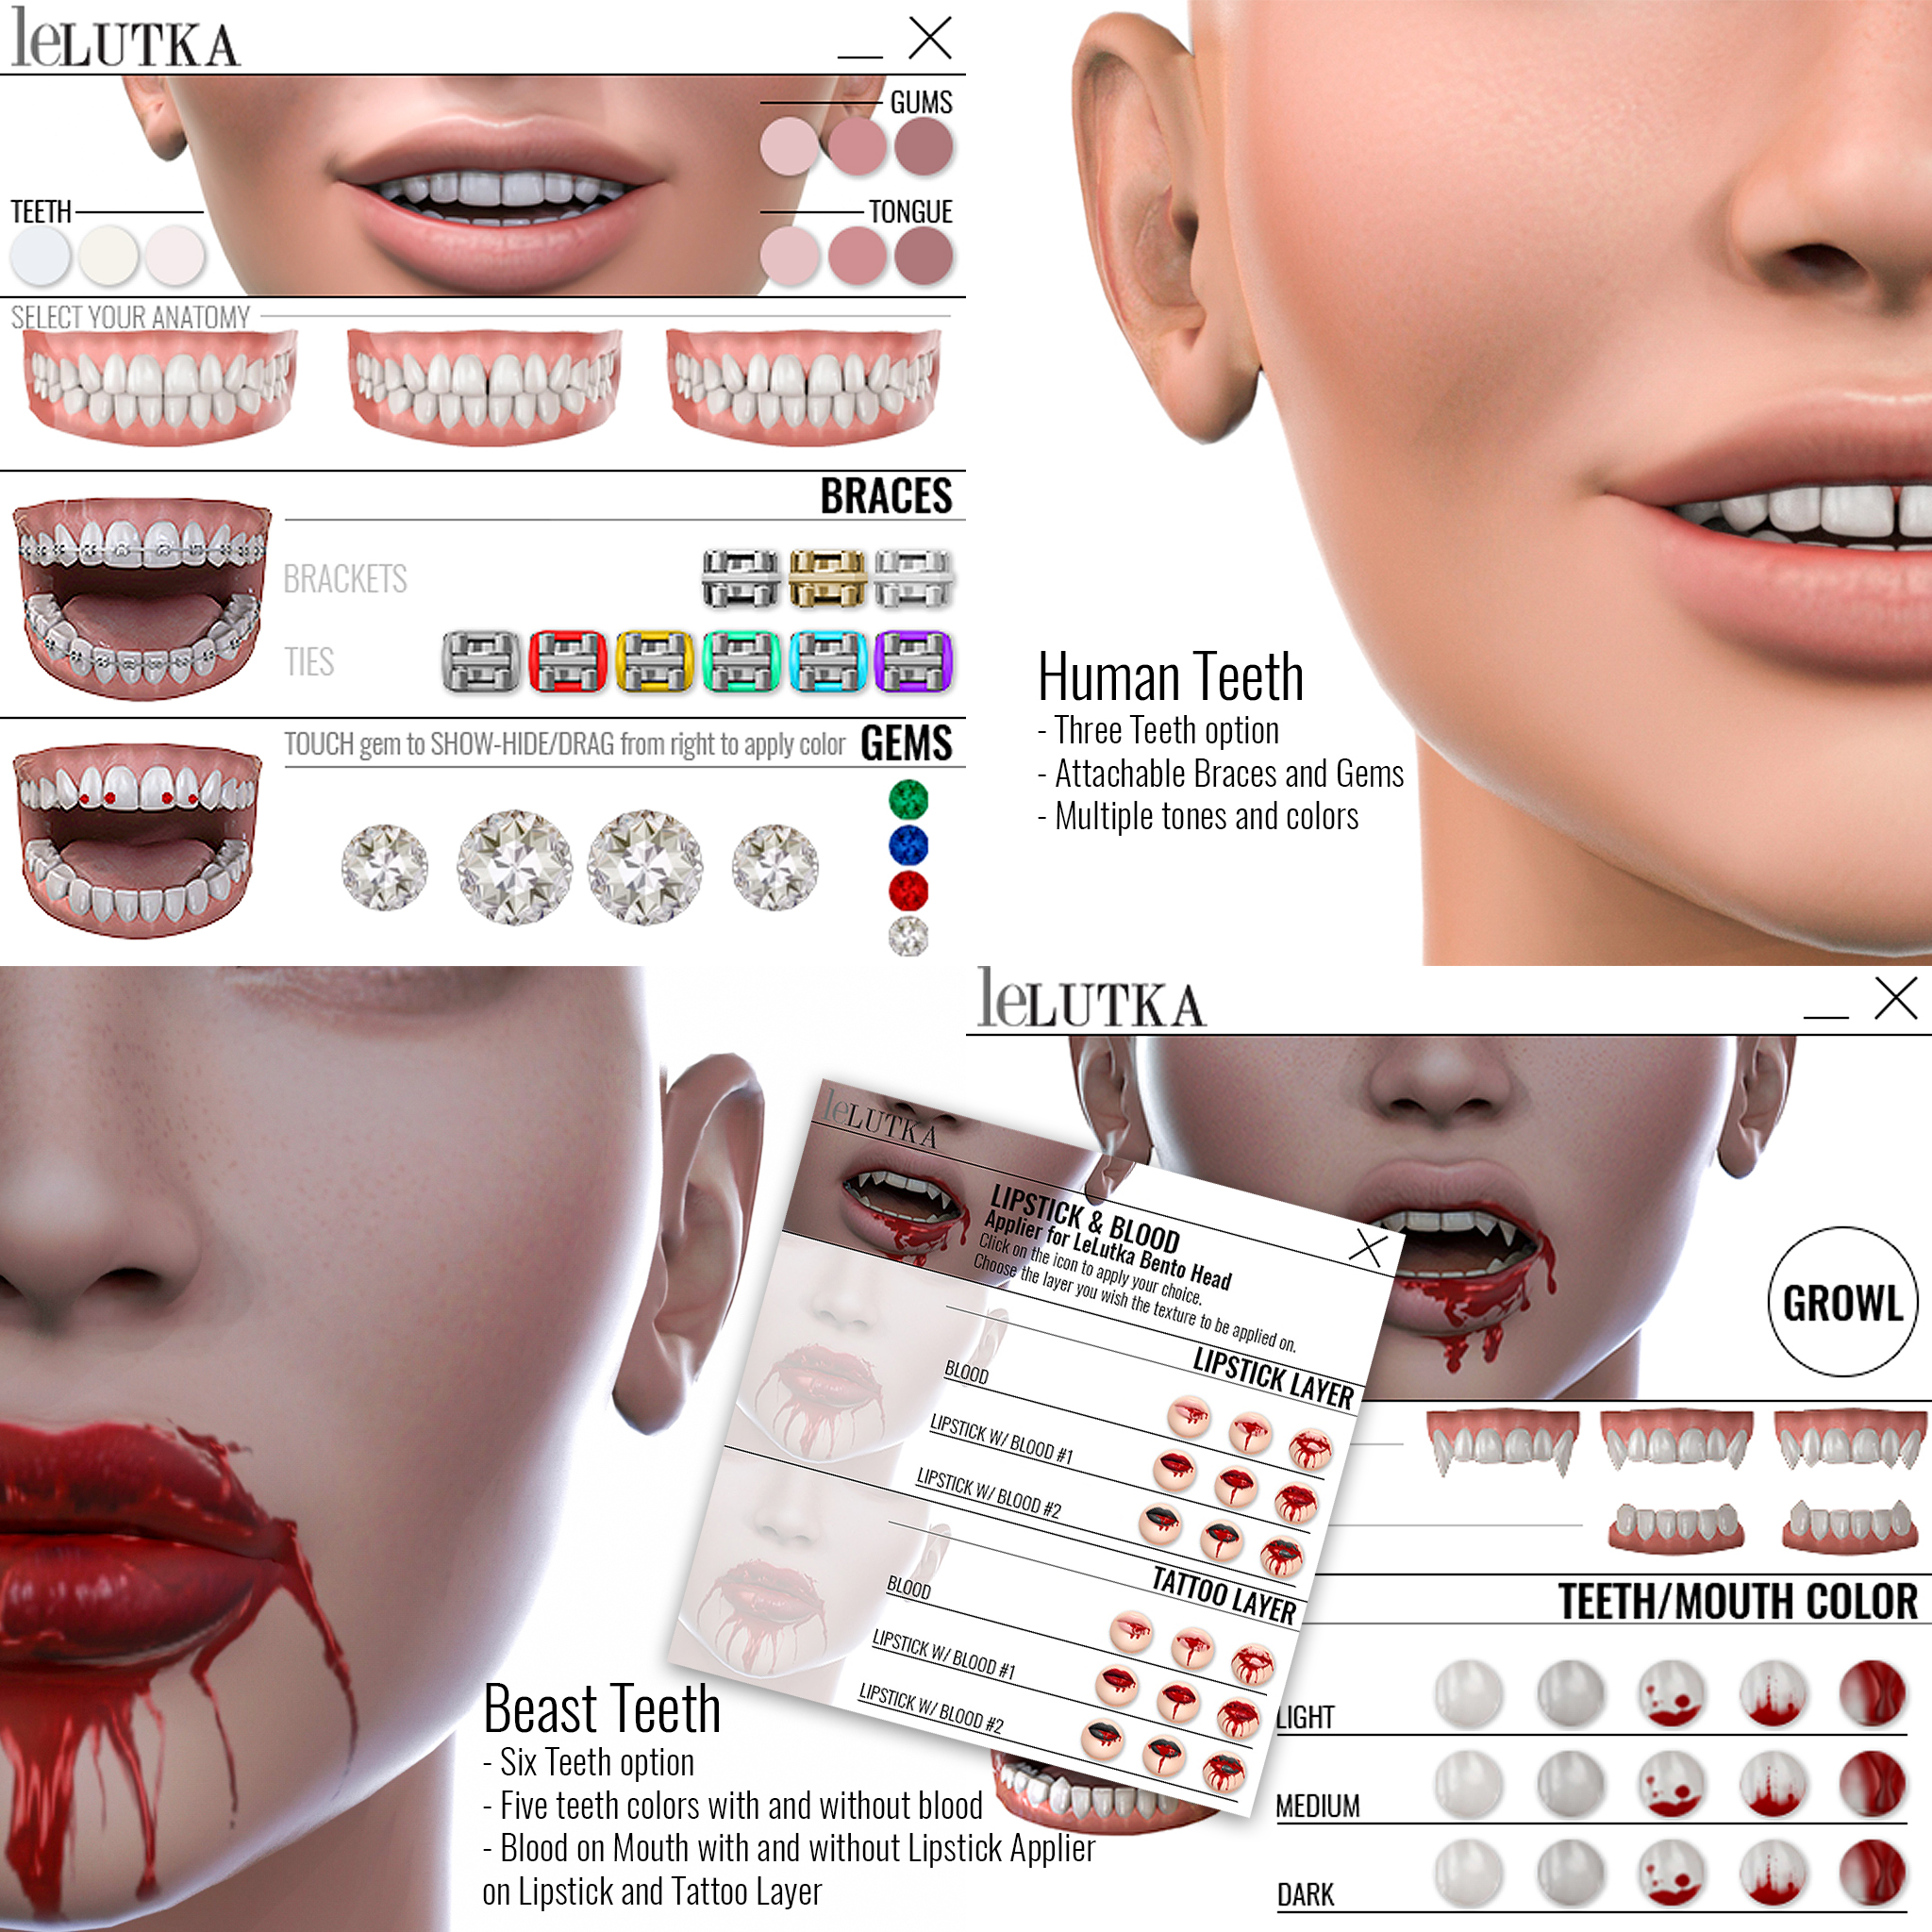 Lelutka-Teeth Advanced-UPDATED